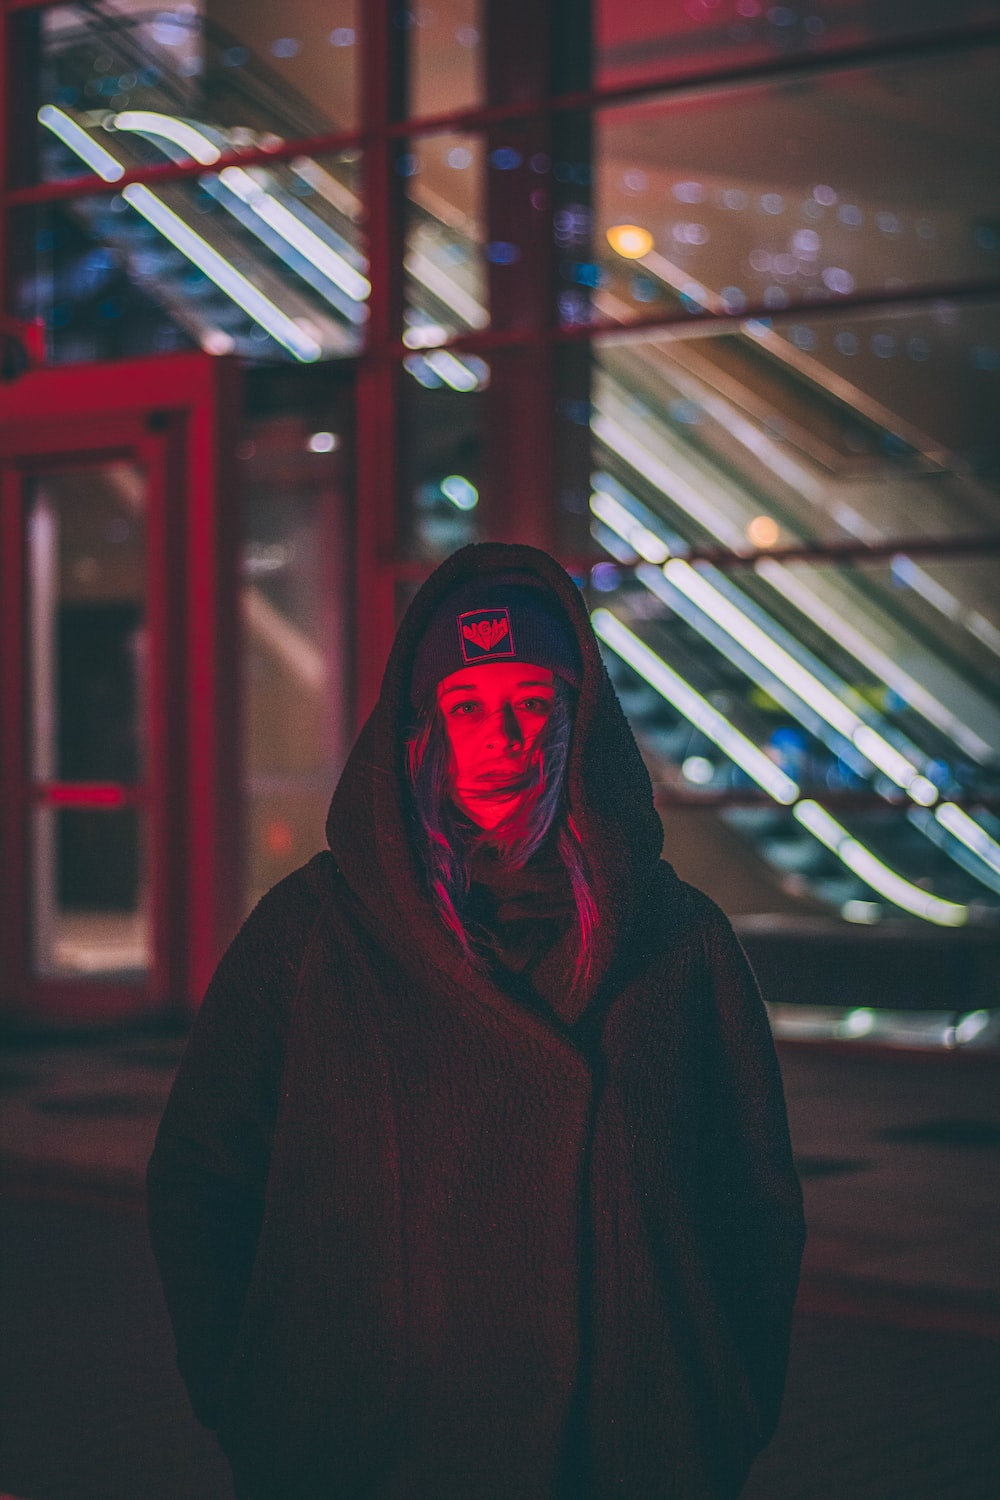 reflection of red light on woman wearing black coat